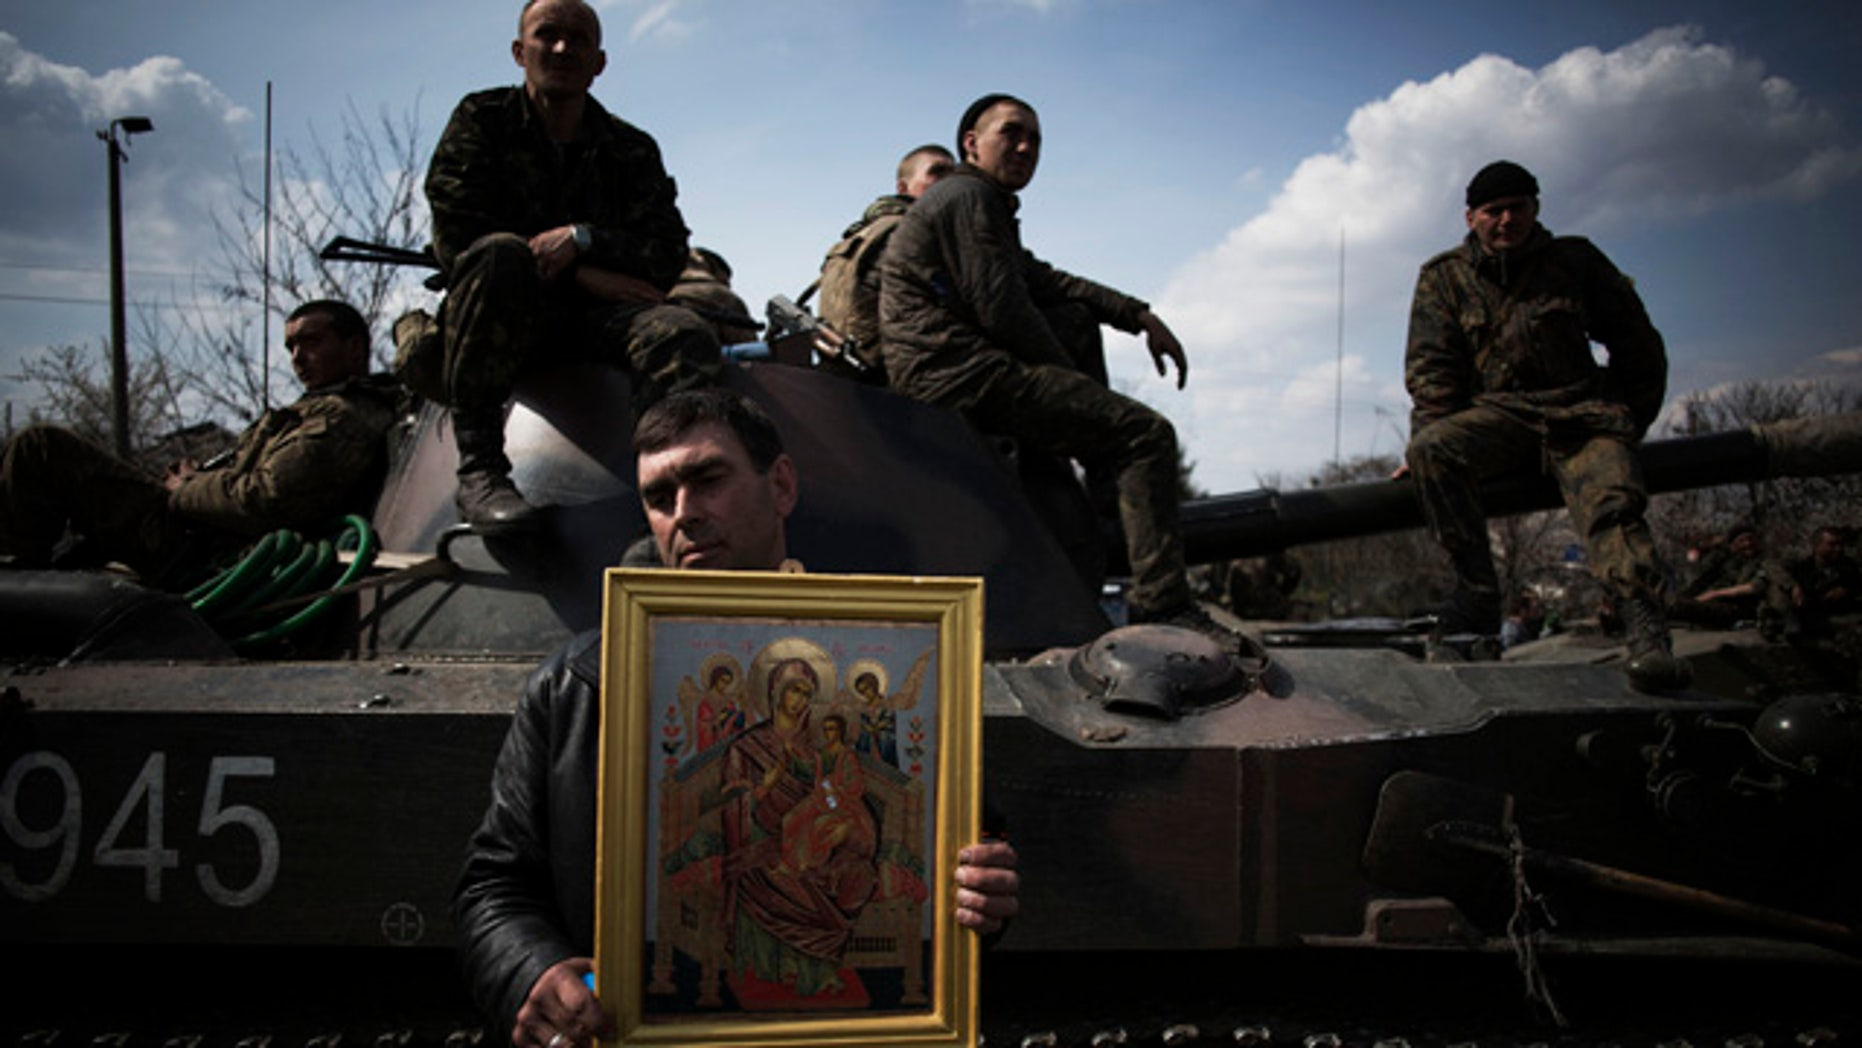 April 16, 2014: A local resident holds an Orthodox icon in front of an armored vehicle and soldiers of the Ukrainian Army, as they are blocked by people on their way to the town of Kramatorsk. Pro-Russian insurgents commandeered six Ukrainian armored vehicles along with their crews and hoisted Russian flags over them Wednesday, dampening the central government's hopes of re-establishing control over restive eastern Ukraine. (AP Photo/Manu Brabo)